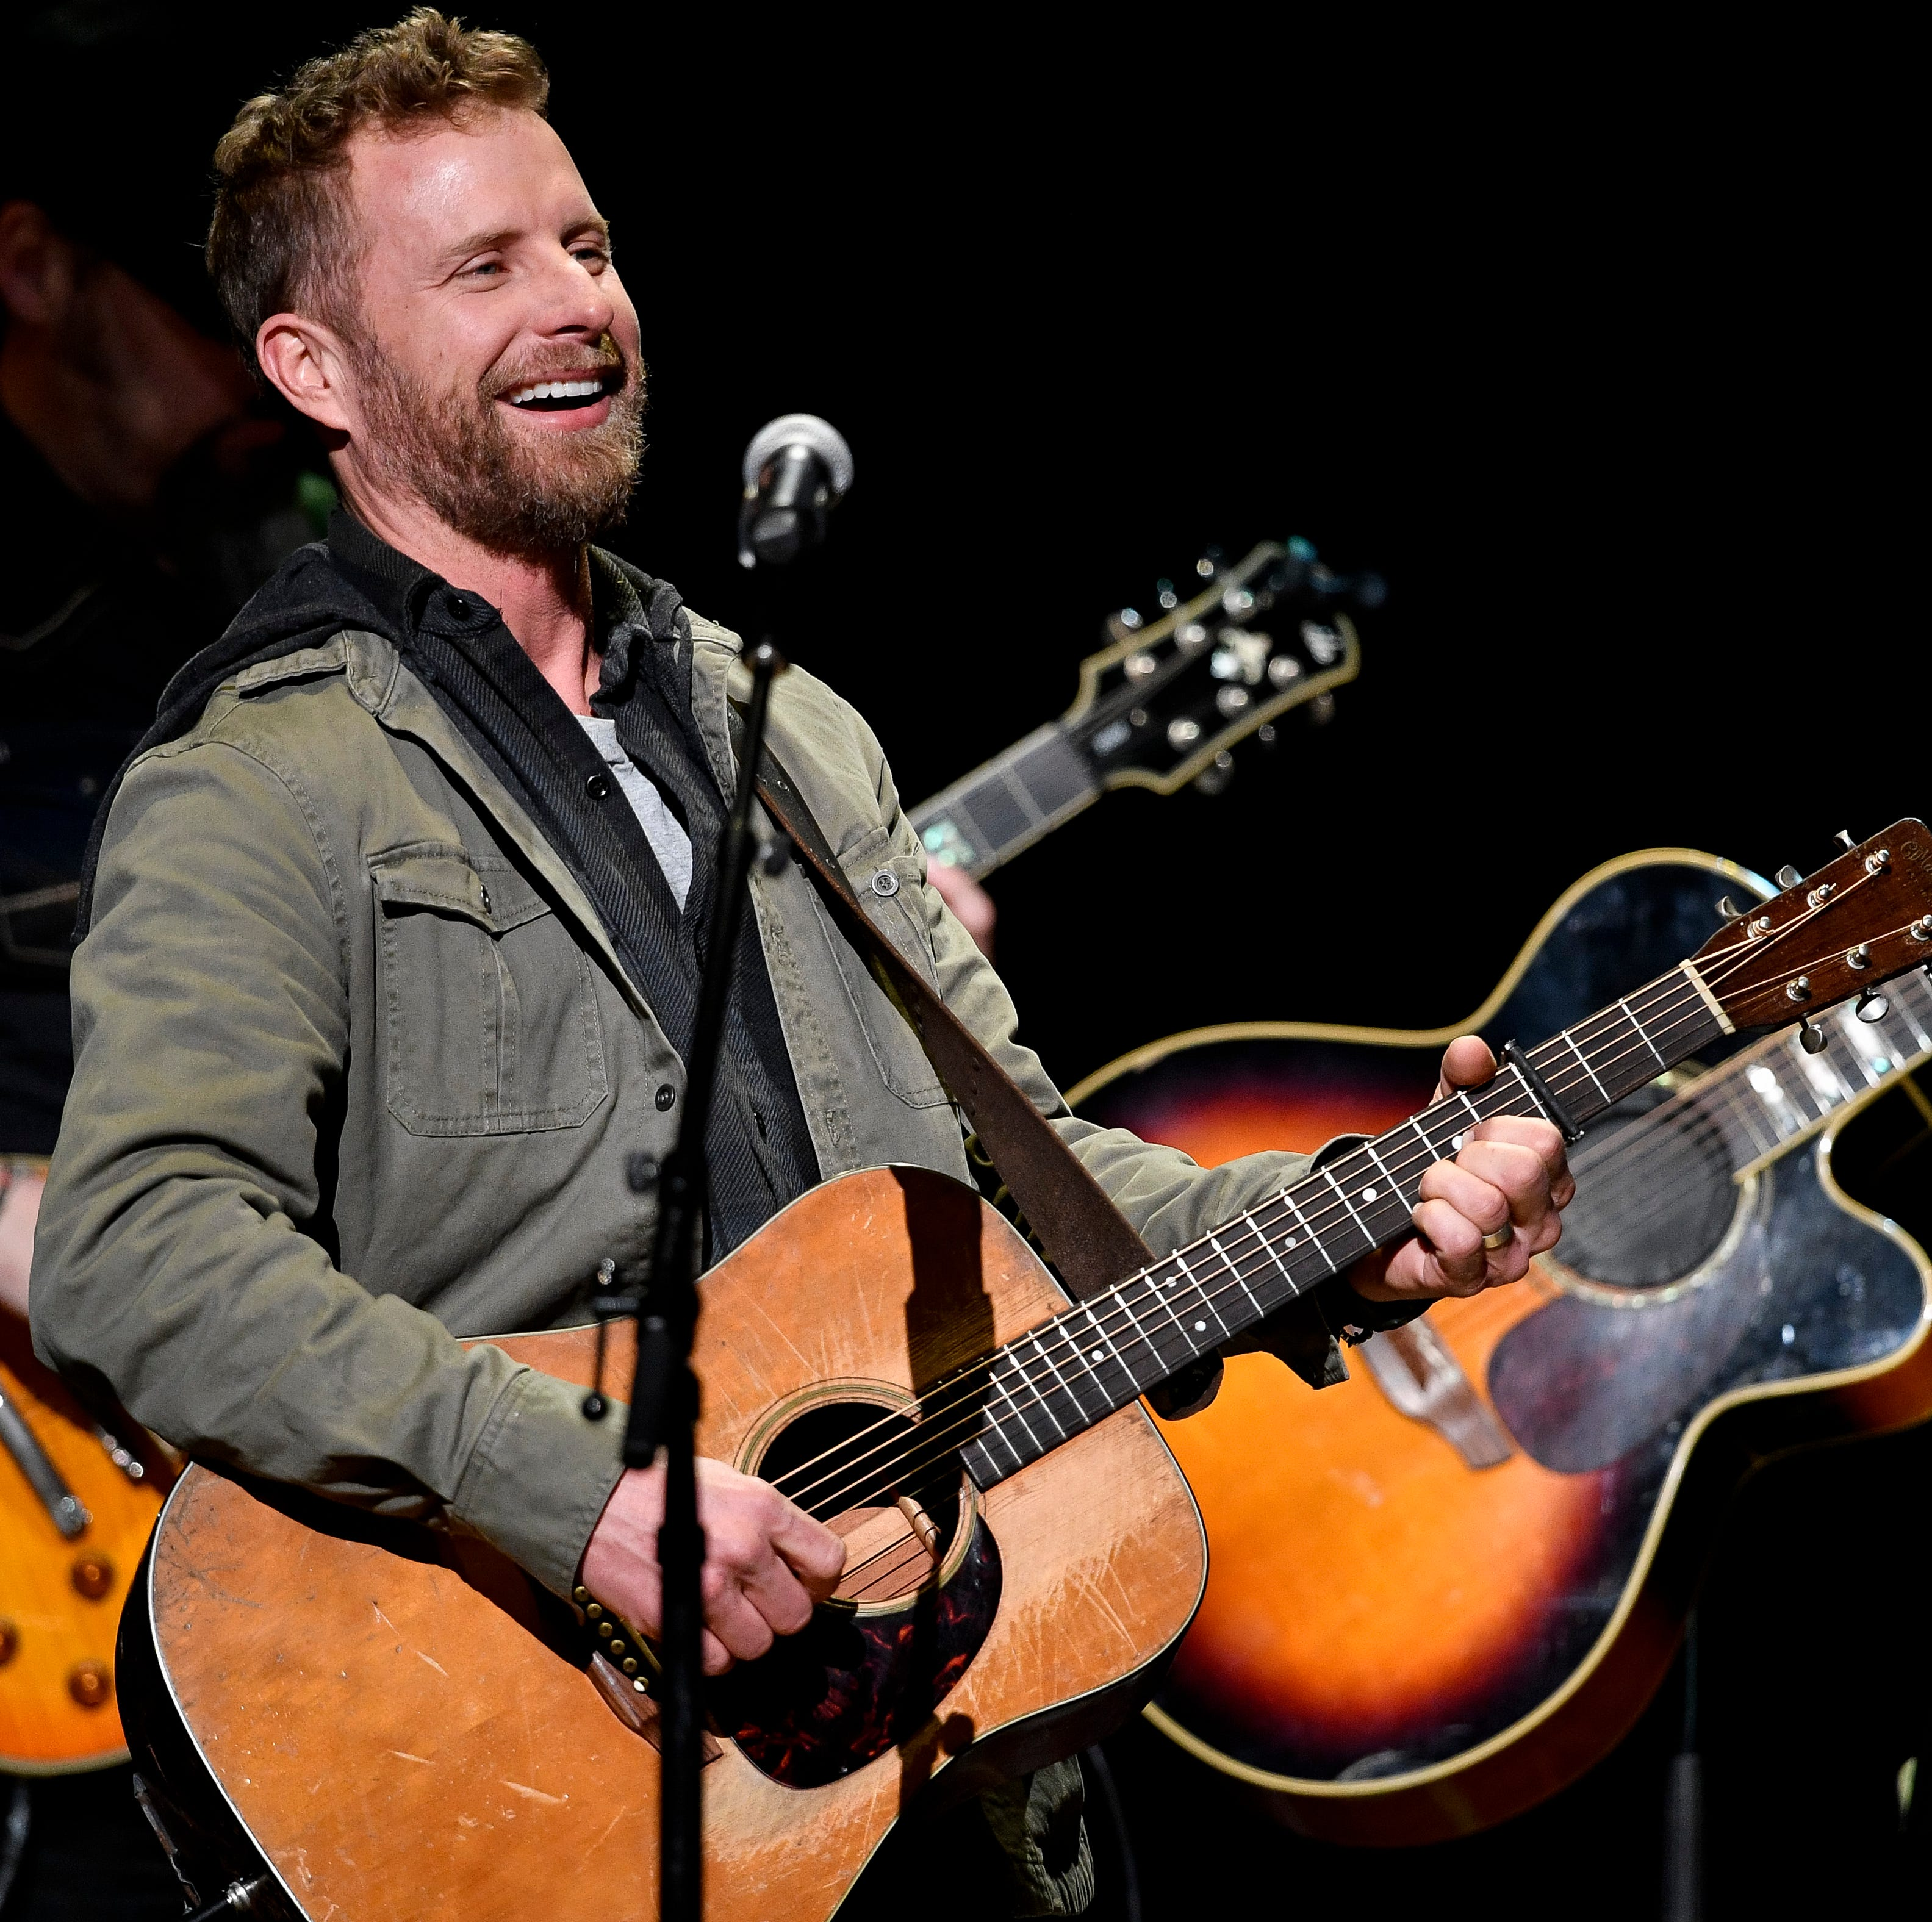 Concerts: Dierks Bentley performing at Blossom in July